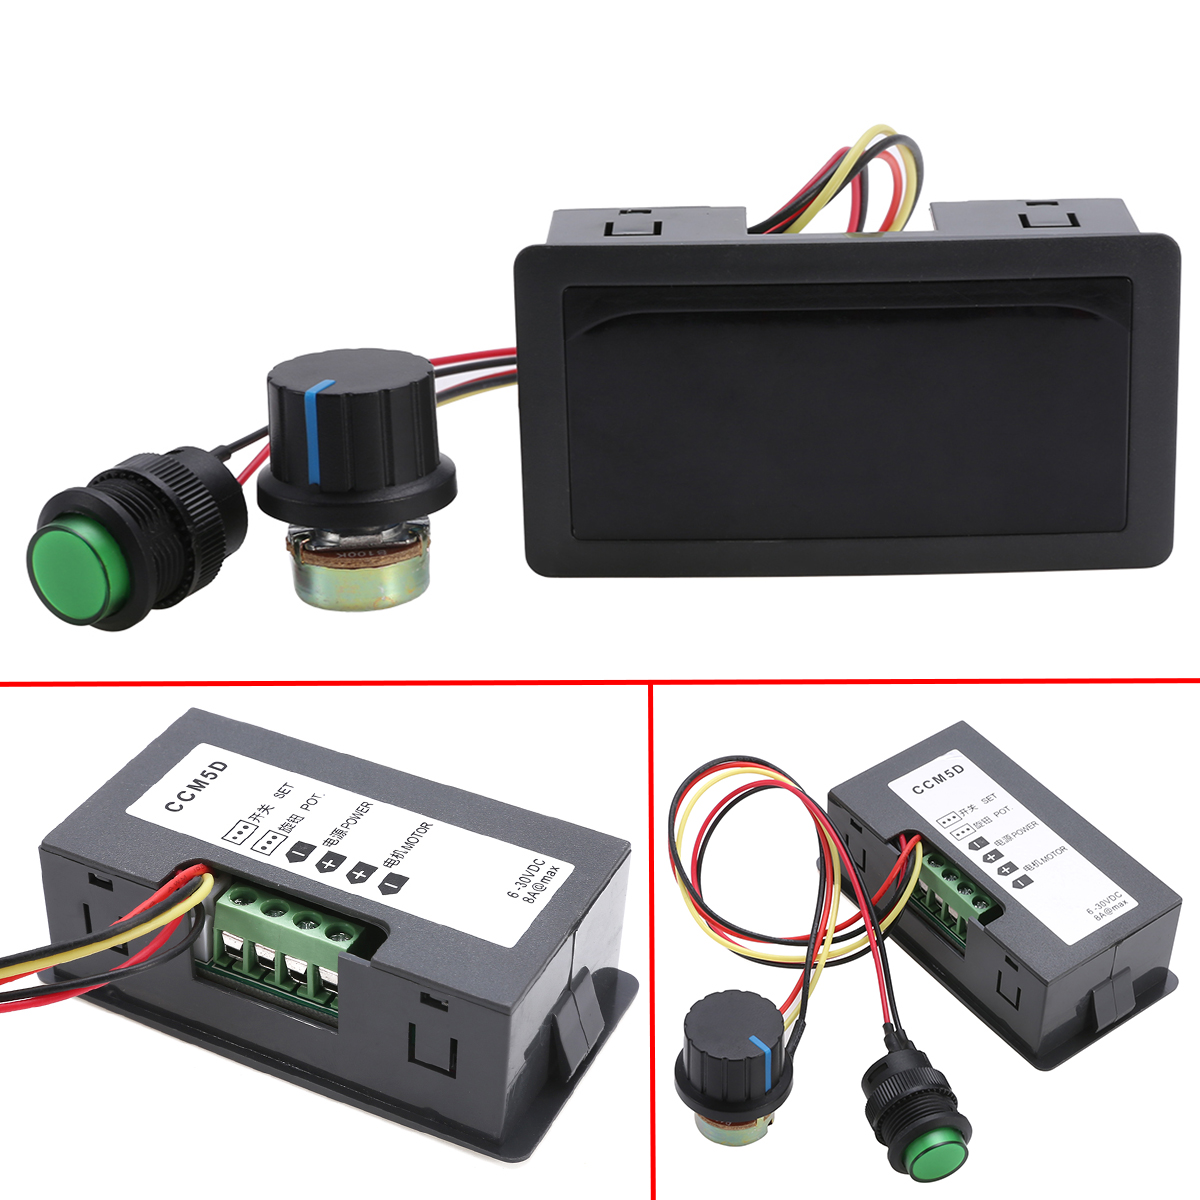 DC 6-30V 12V 24V DC 5A Motor Speed Control Regulator PWM Speed Controller With Digital Display Switch High Power Drive ModuleDC 6-30V 12V 24V DC 5A Motor Speed Control Regulator PWM Speed Controller With Digital Display Switch High Power Drive Module